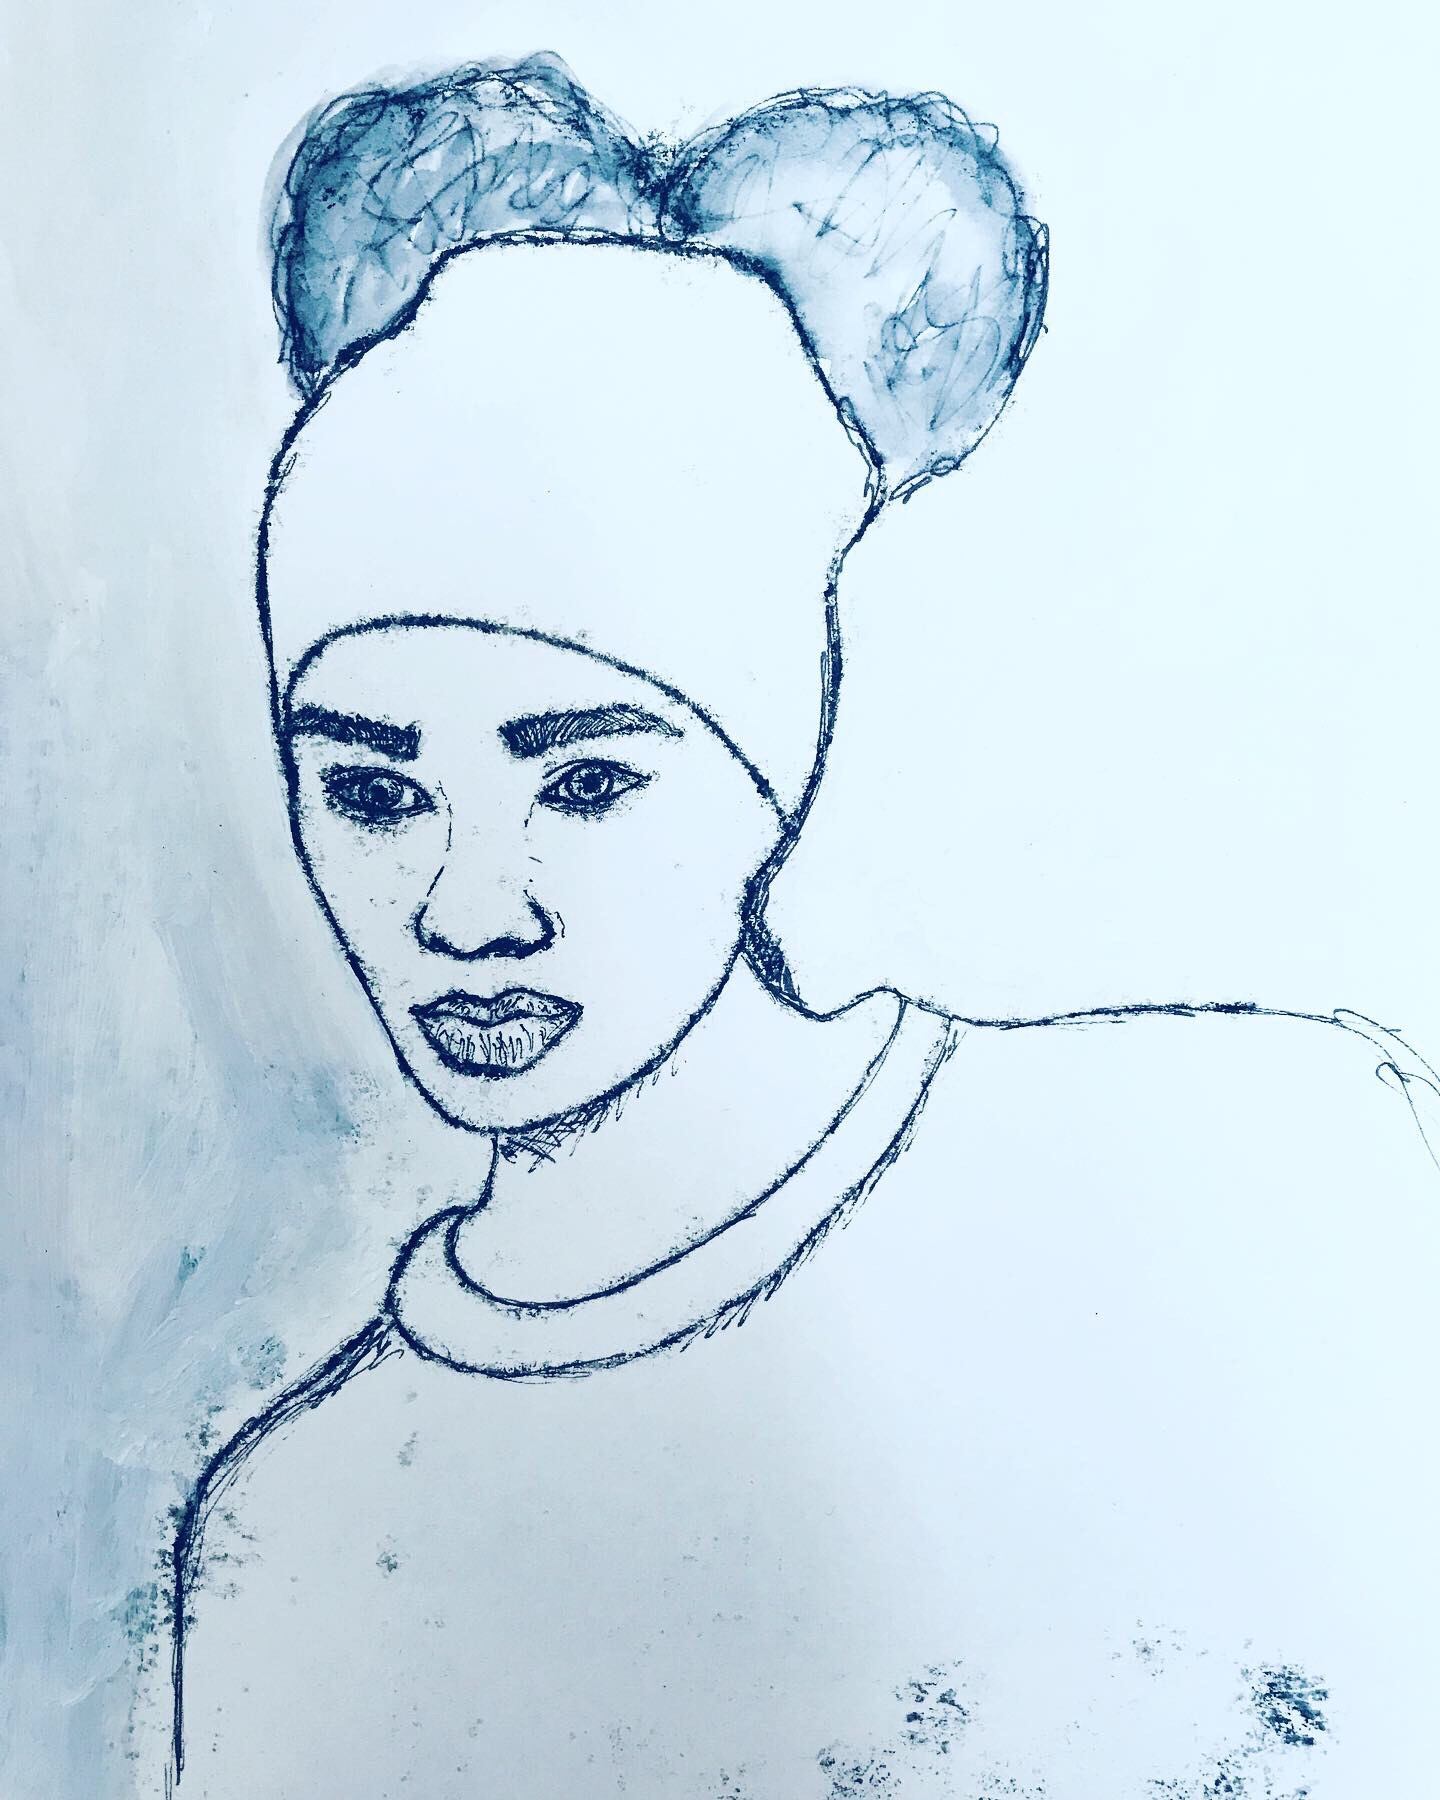 Girl with a Pom Pom Hat - mono print with acrylic paint.